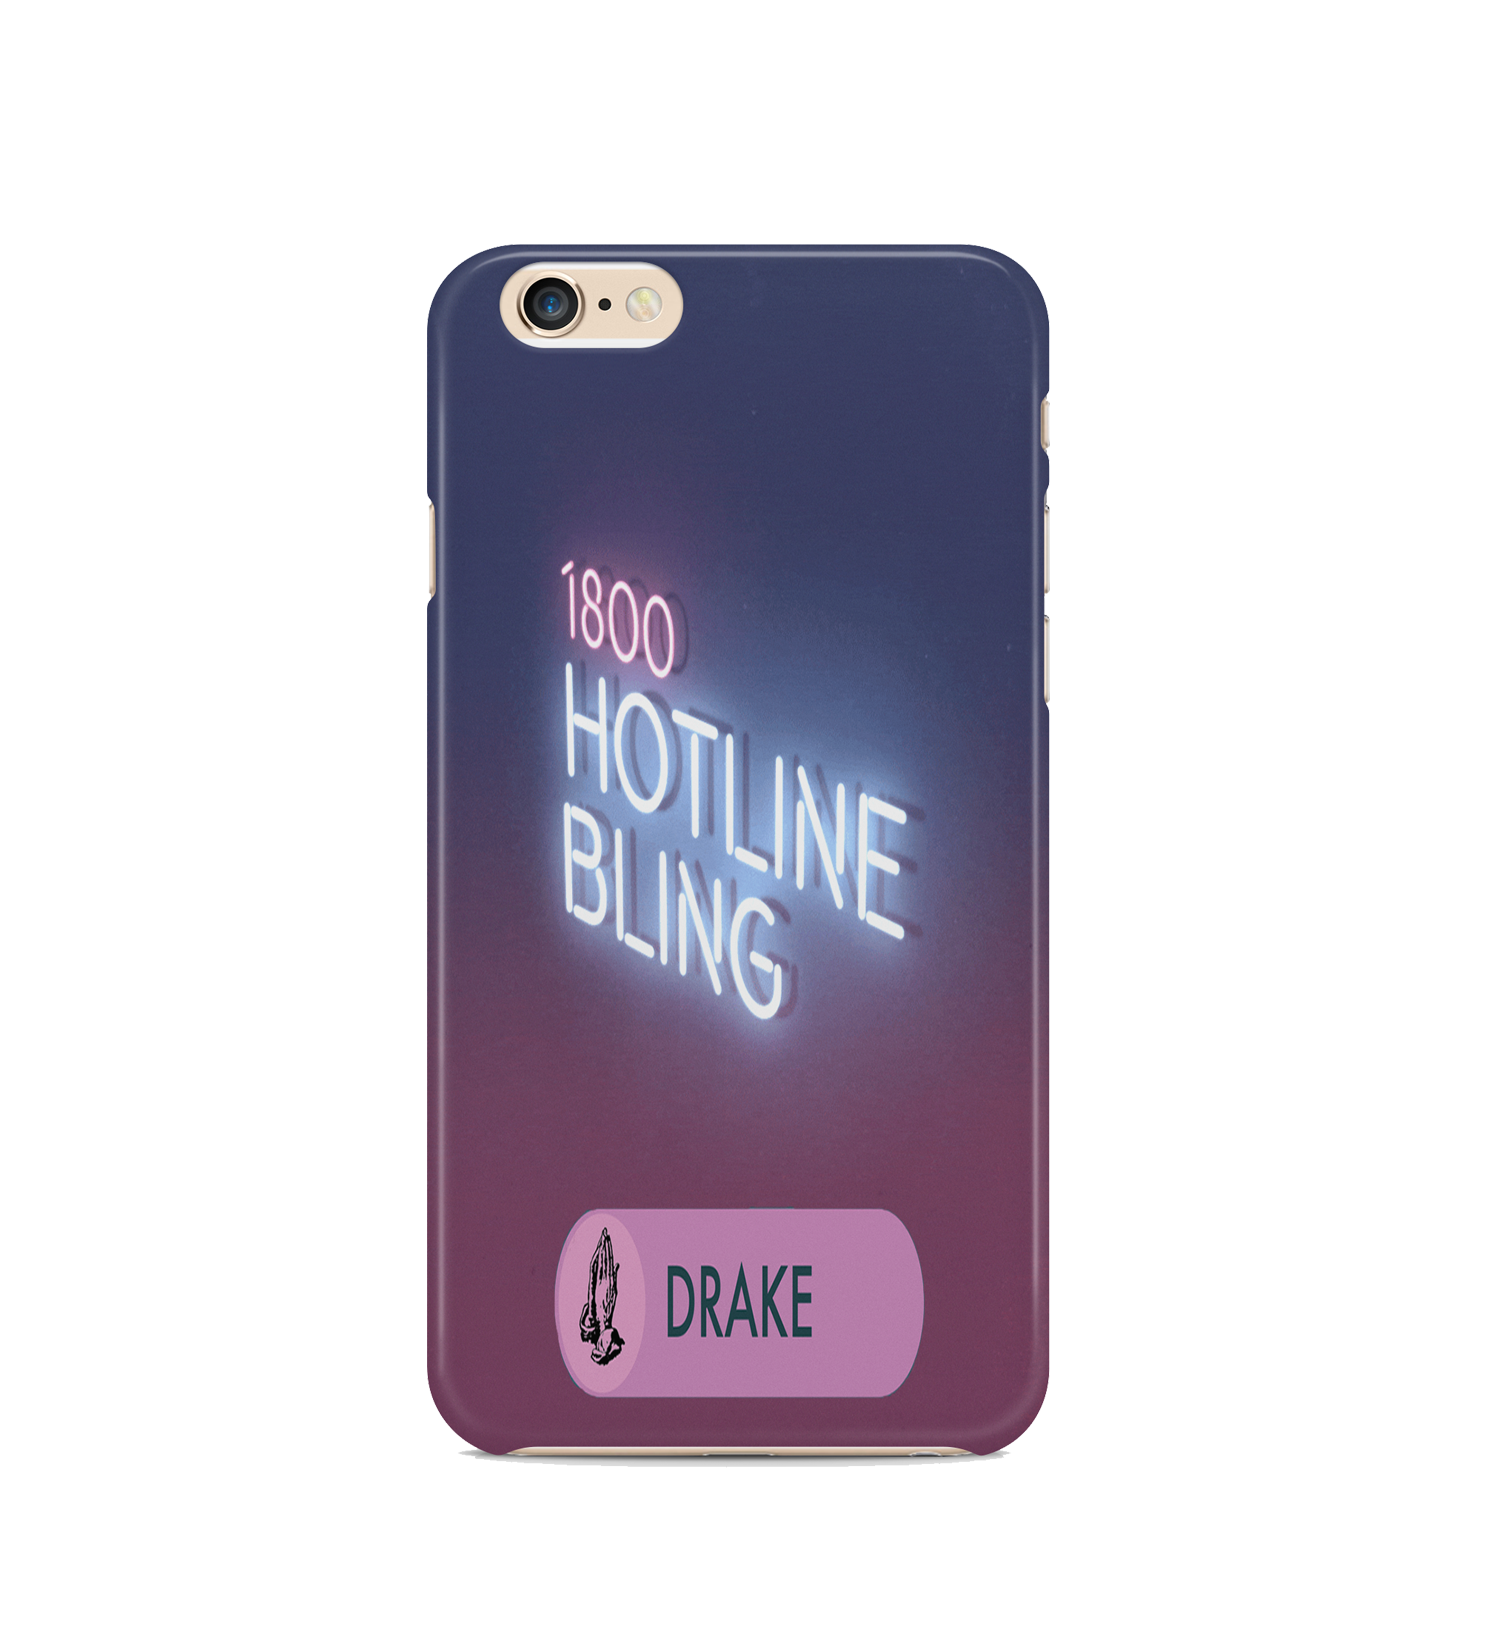 1800 hotline bling png. Phone case iphones